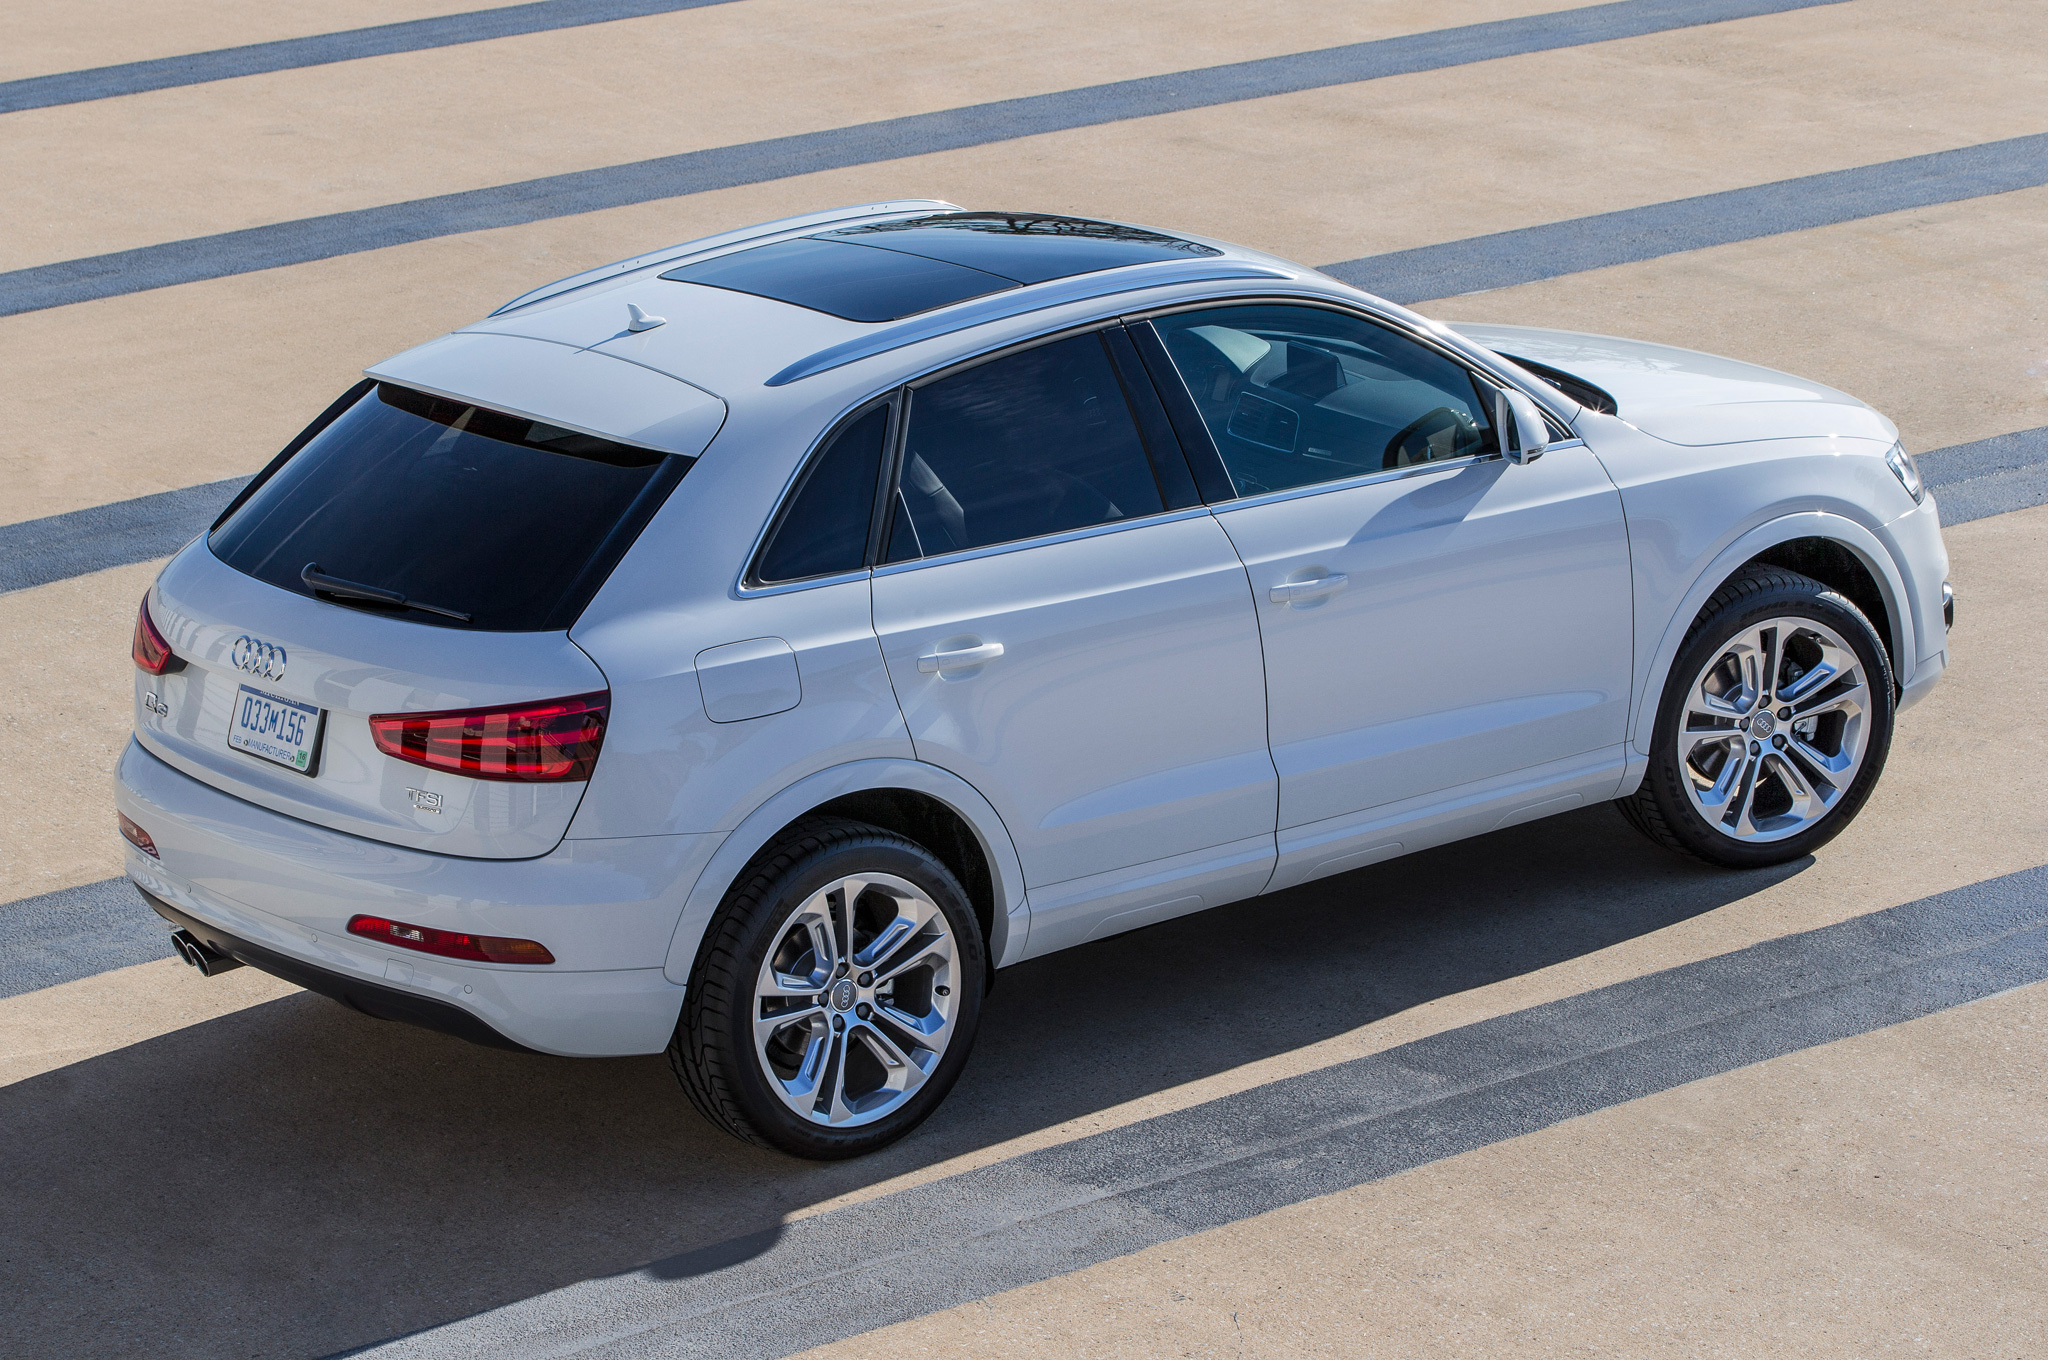 2015 Audi Q3 White Road Test (Photo 21 of 21)